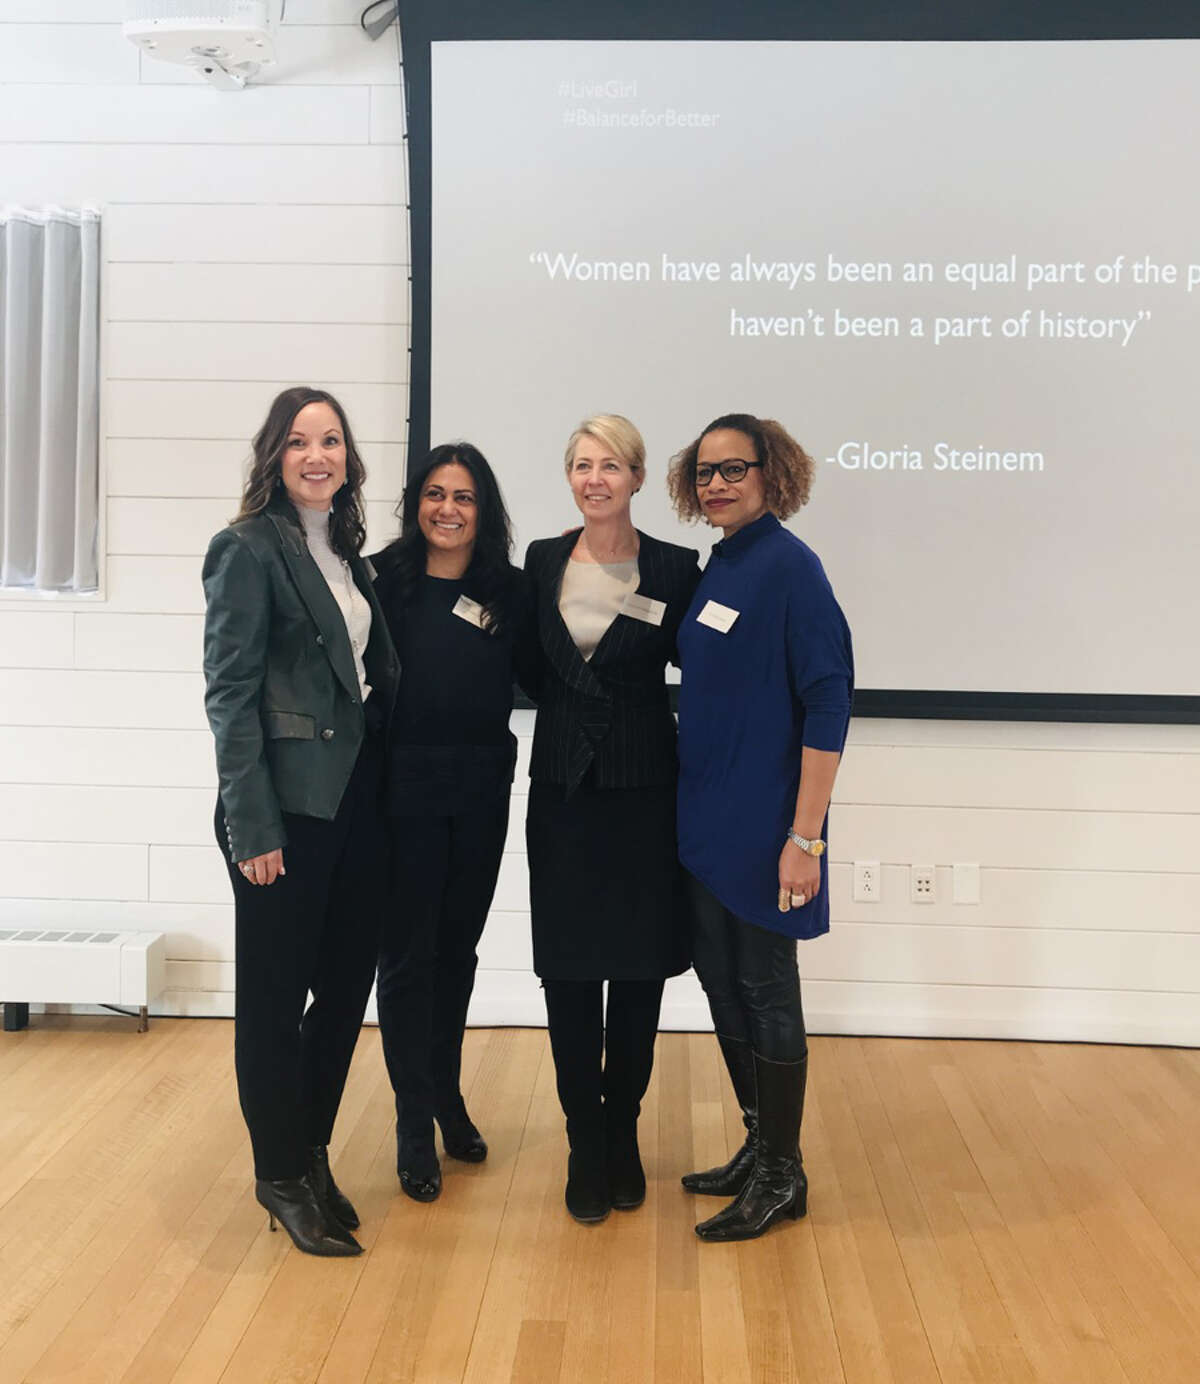 LiveGirl and the Grace Farms Foundation co-hosted a networking luncheon in celebration of International Women's Day on March 8, 2019 that included representatives from over 25 companies that support girls and women statewide. Sheri West (LiveGirl Founder & CEO), Krishna Patel (Grace Farms Foundation Justice Initiative Director), Lisa Lynne Kirkpatrick (Grace Farms Foundation Community Initiative Director) and Dr. Vida Samuel (UConn Stamford Professor Women's Studies & LiveGirl Board of Directors). LiveGirl / Contributed photo